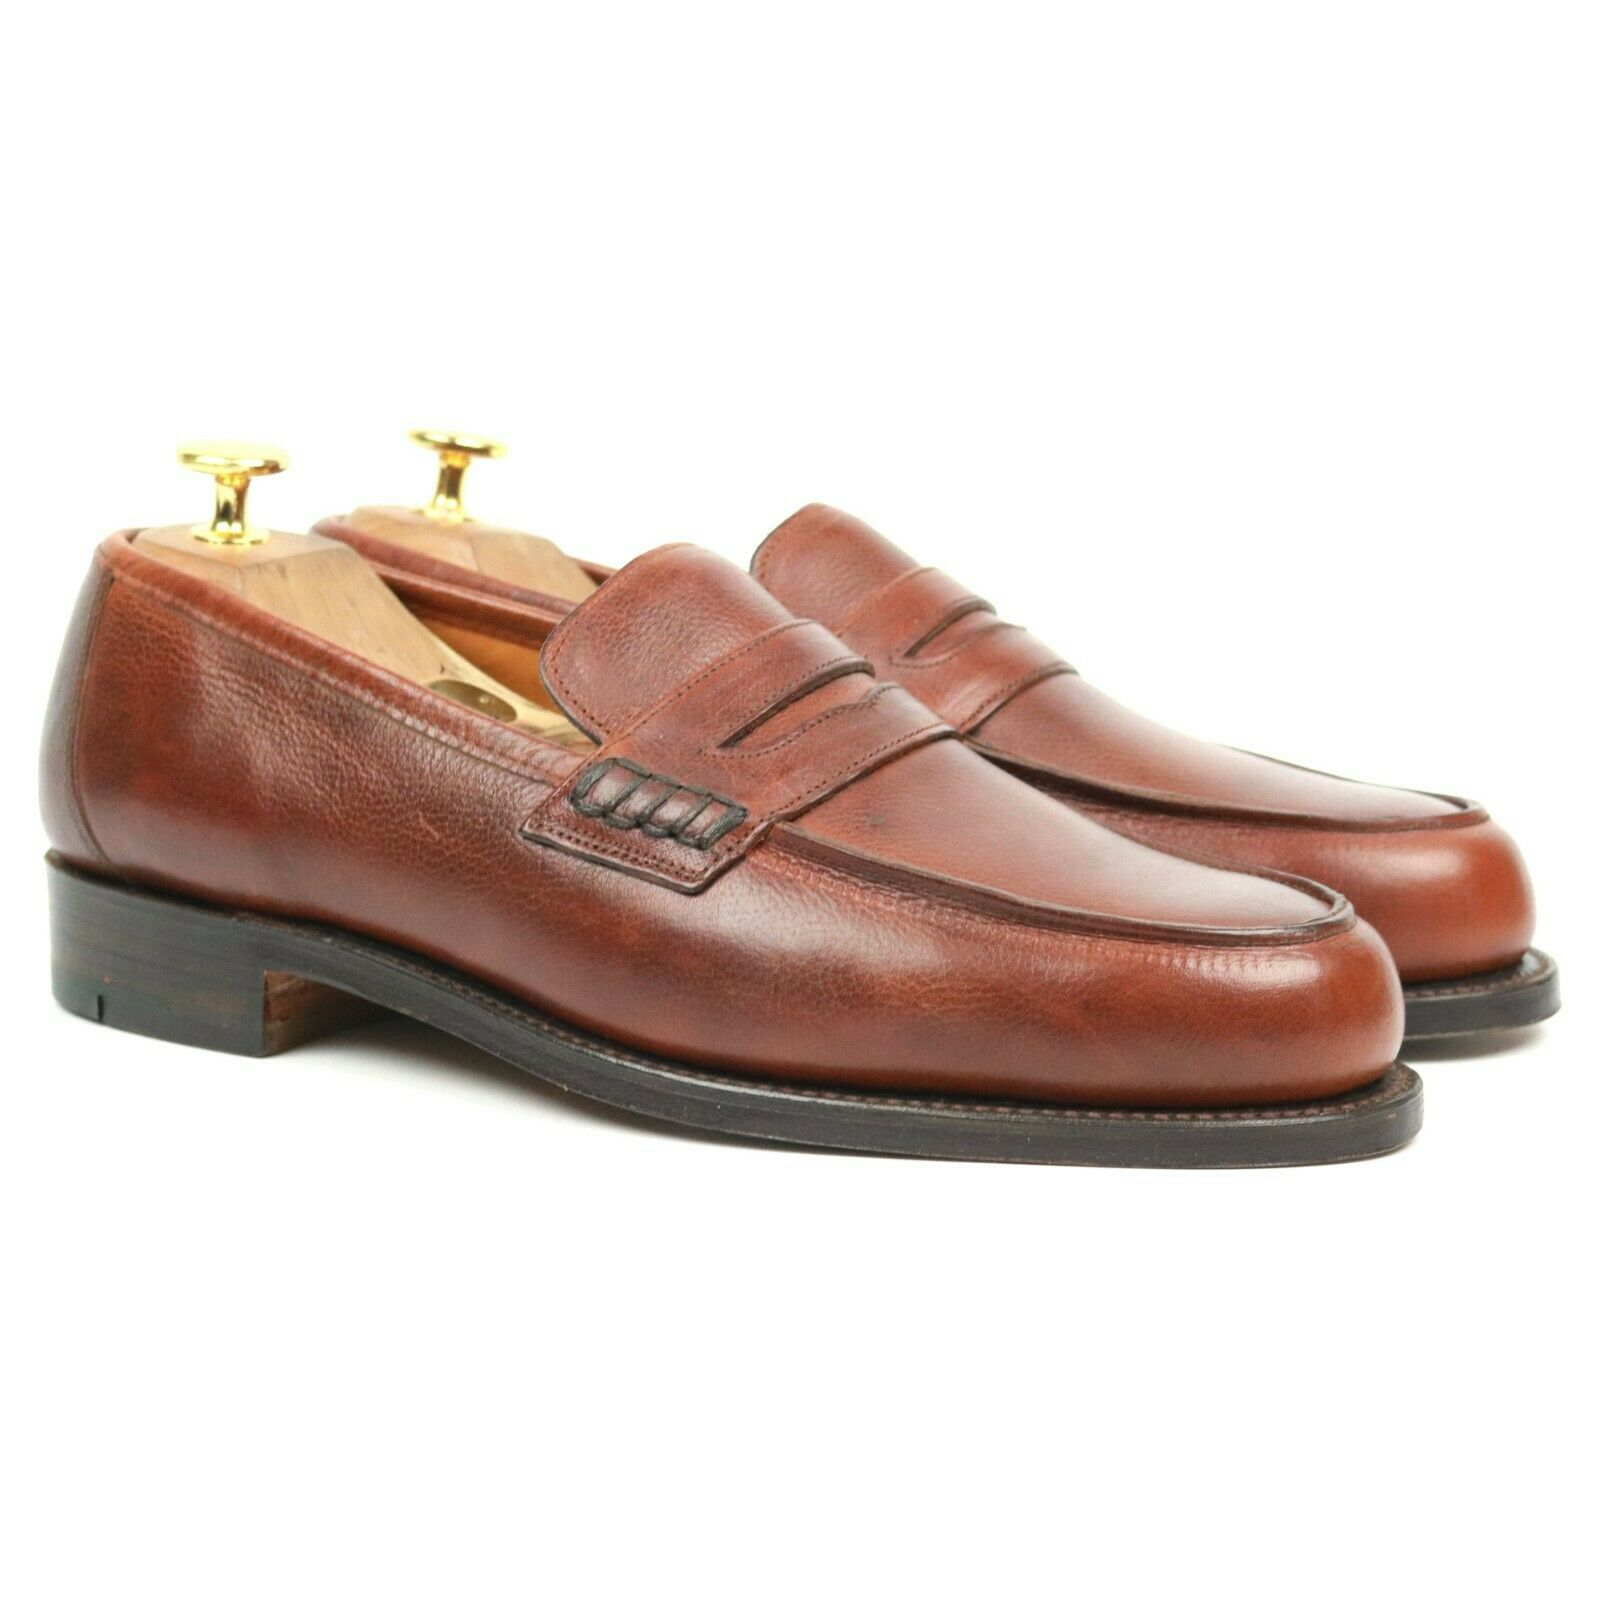 Grenson Brown Leather Loafers Men's shoes UK 8